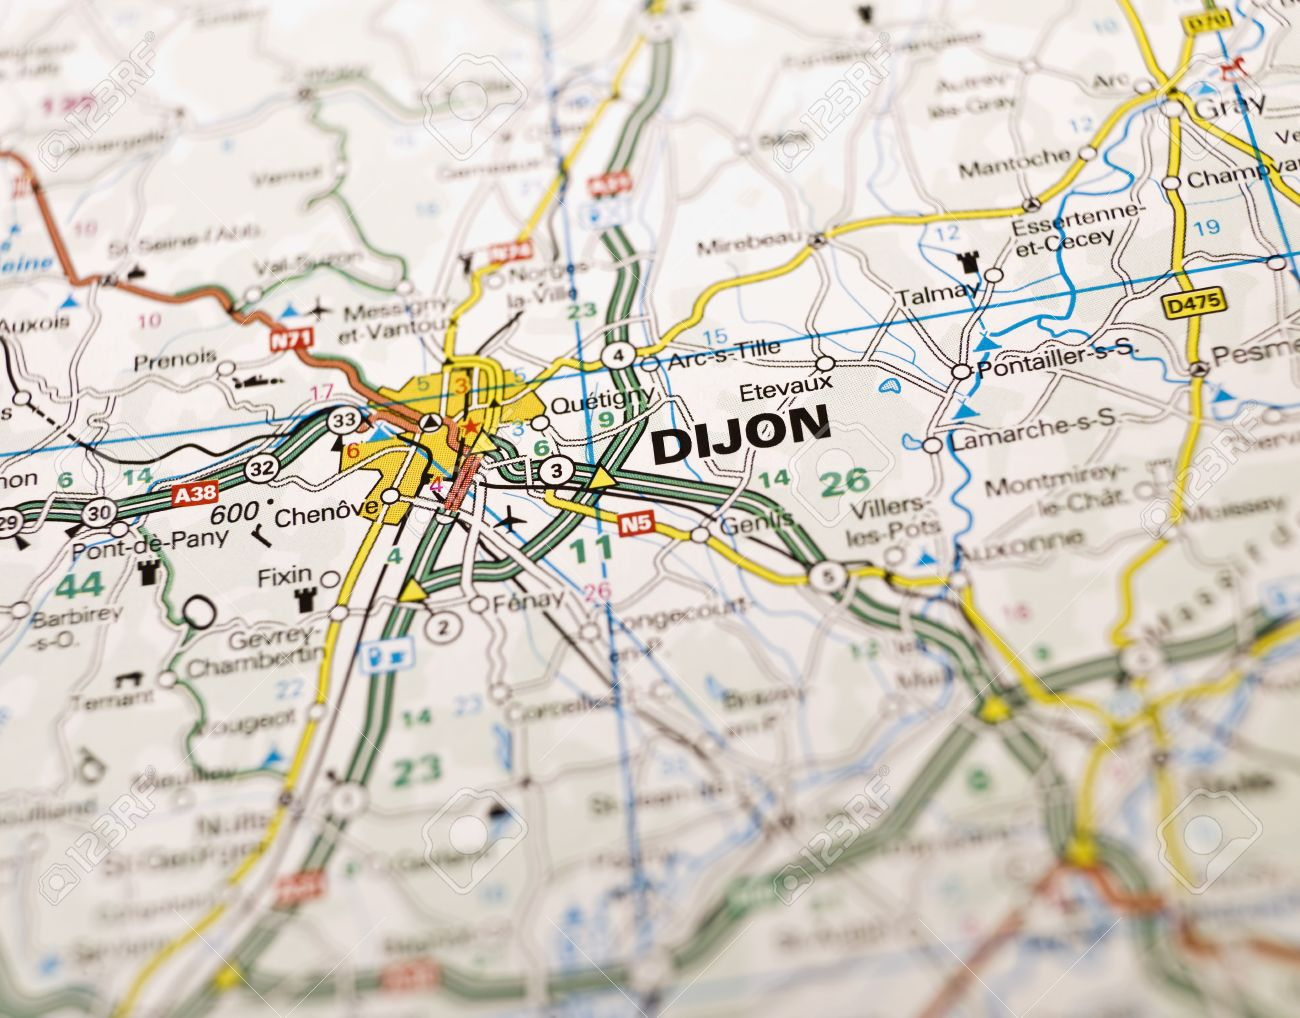 Map Of Dijon In France Stock Photo Picture And Royalty Free Image